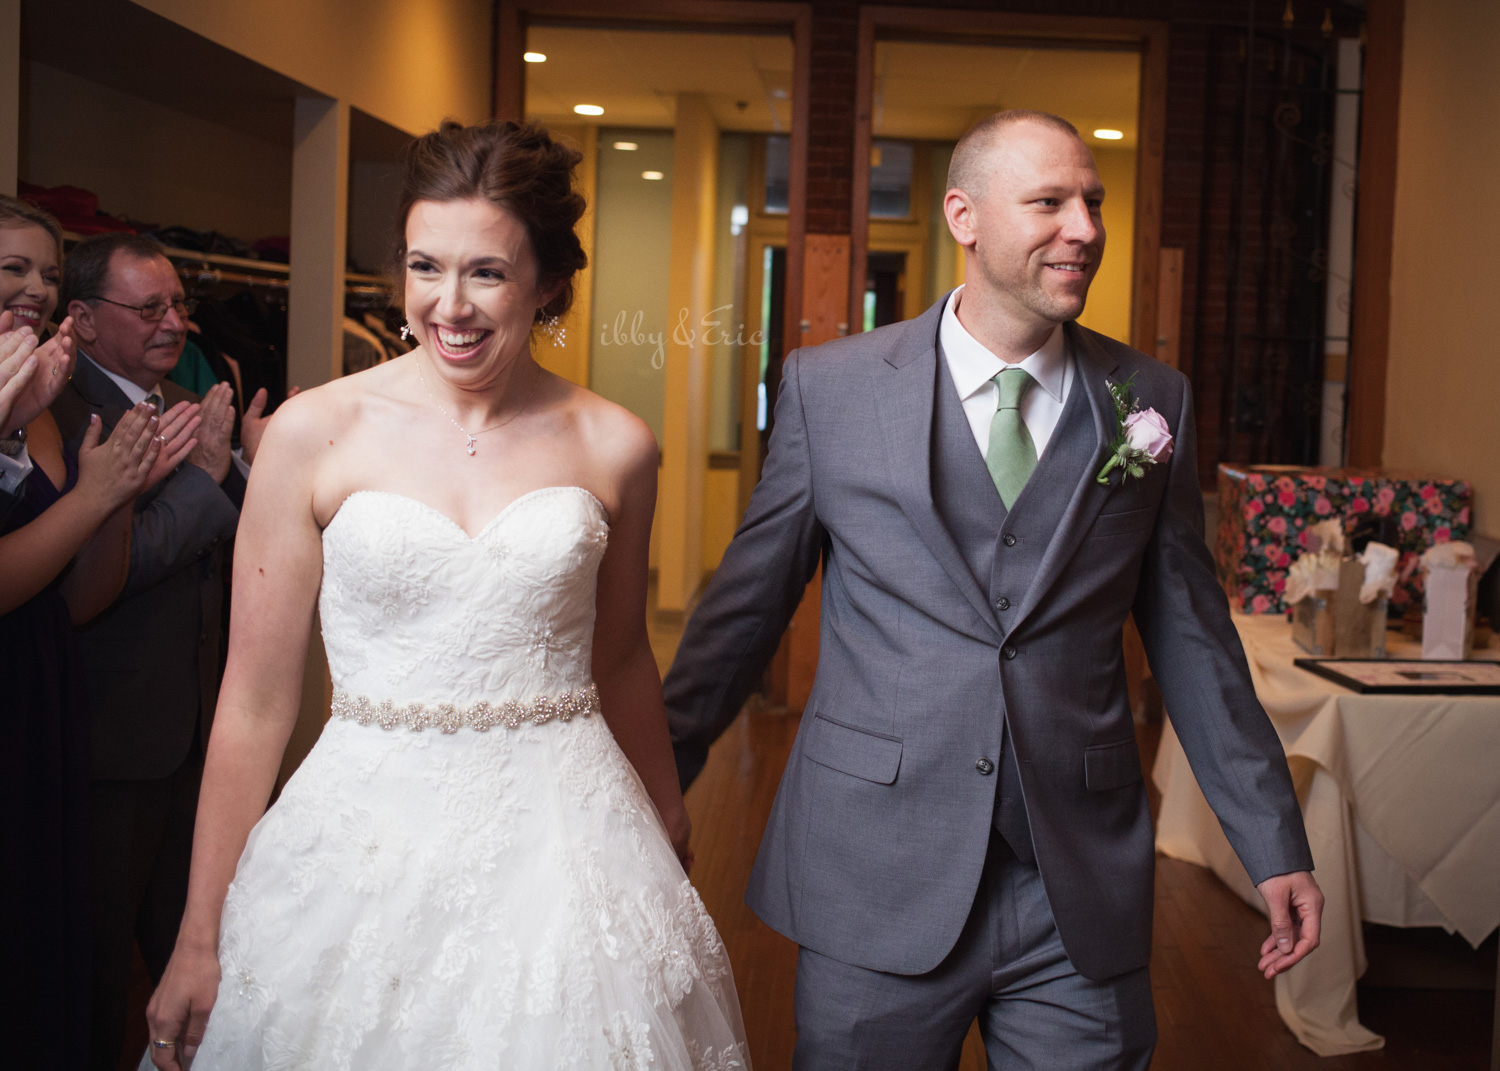 Happy couple getting introduced into their reception for the first time as husband and wife.